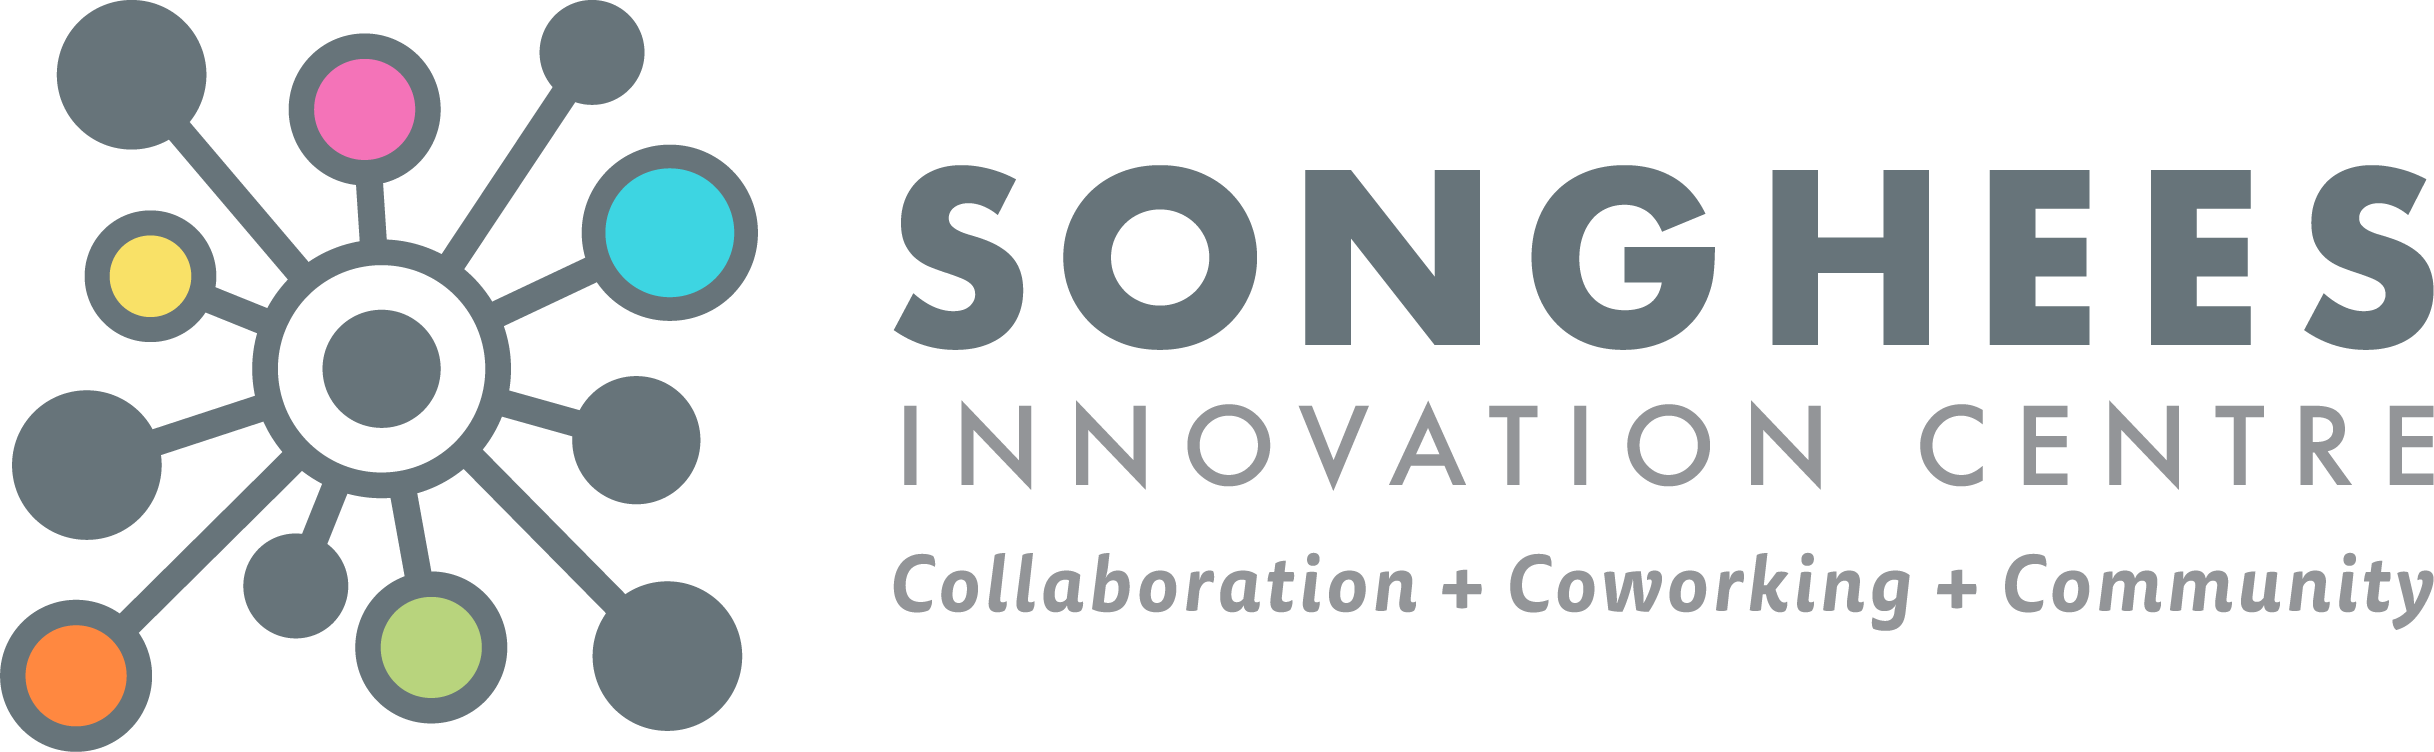 Songhees Innovation Centre